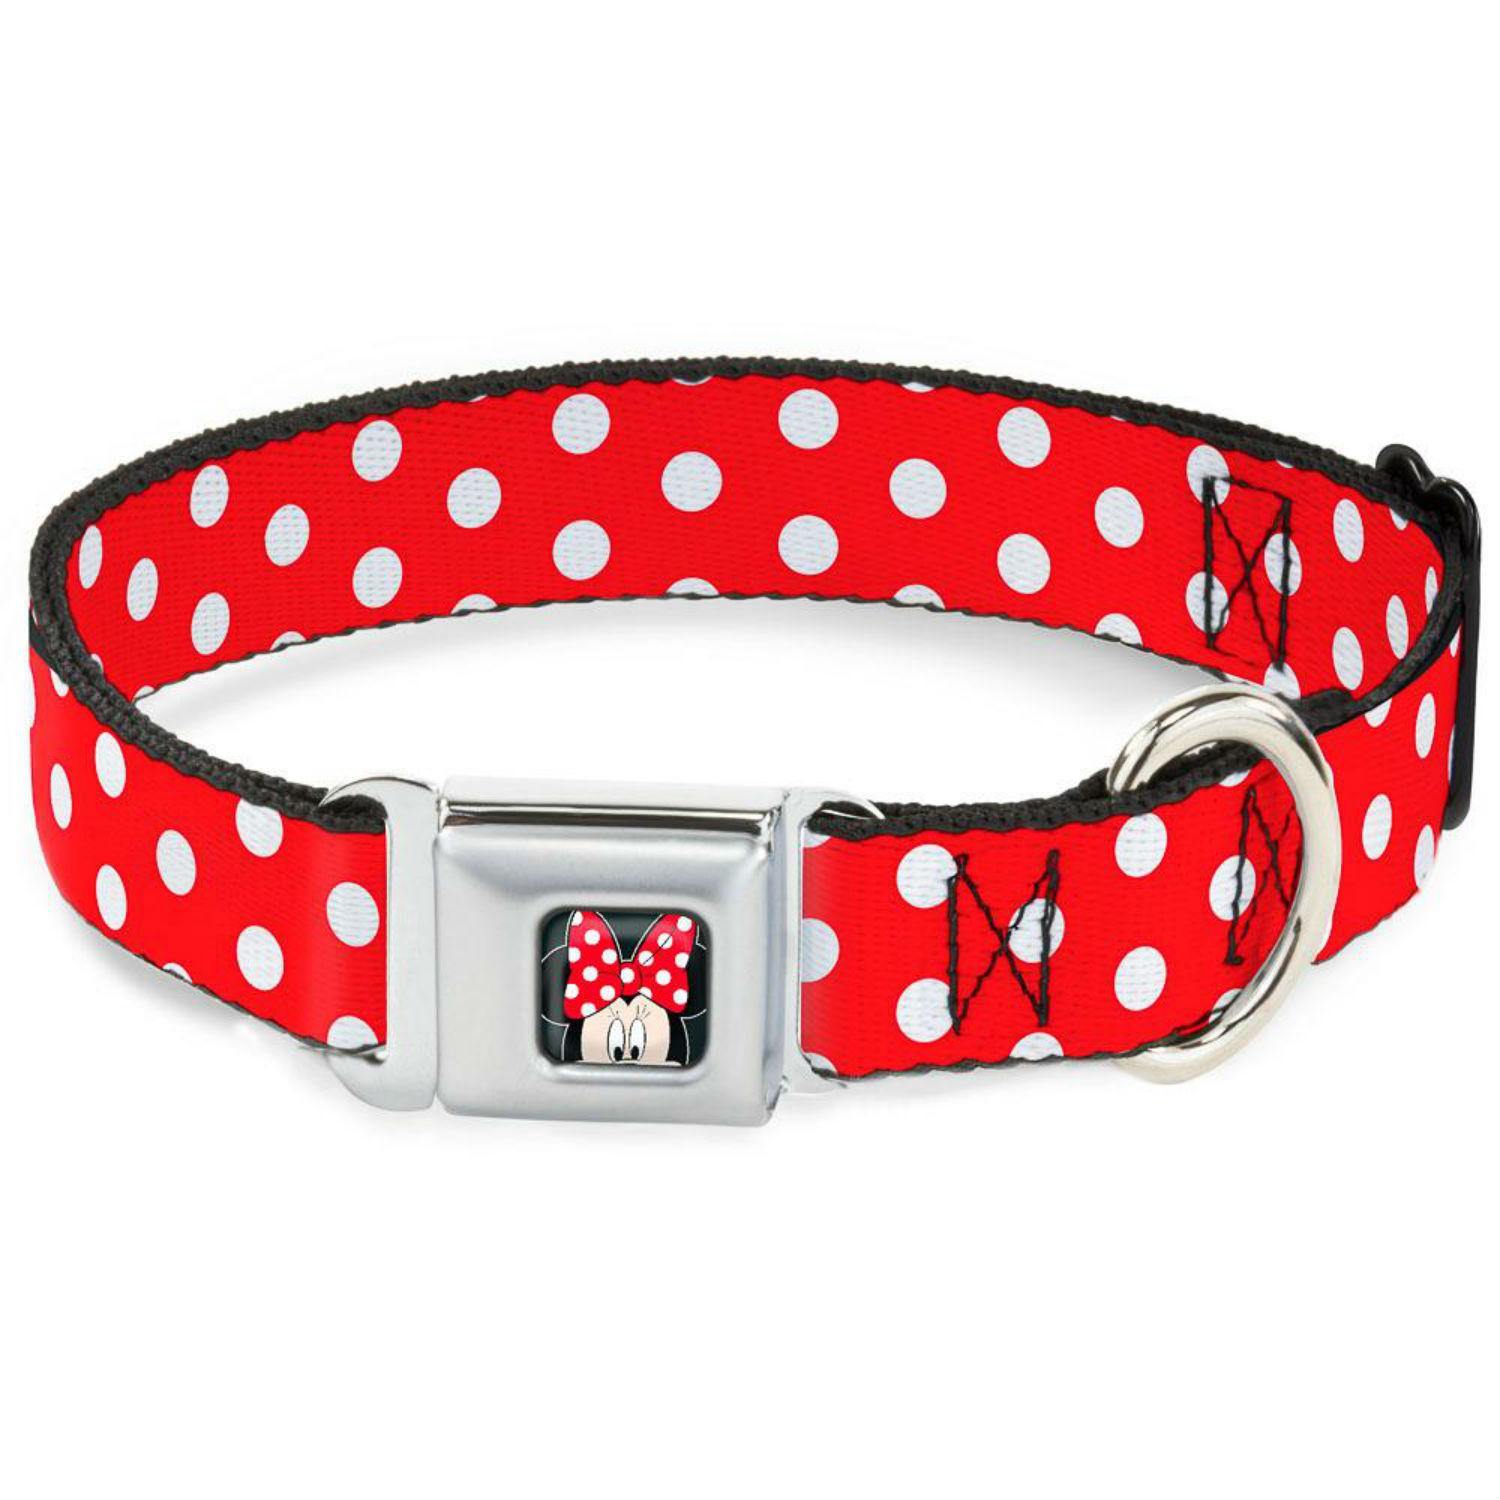 Minnie Mouse Seatbelt Buckle Dog Collar by Buckle-Down - Red/White